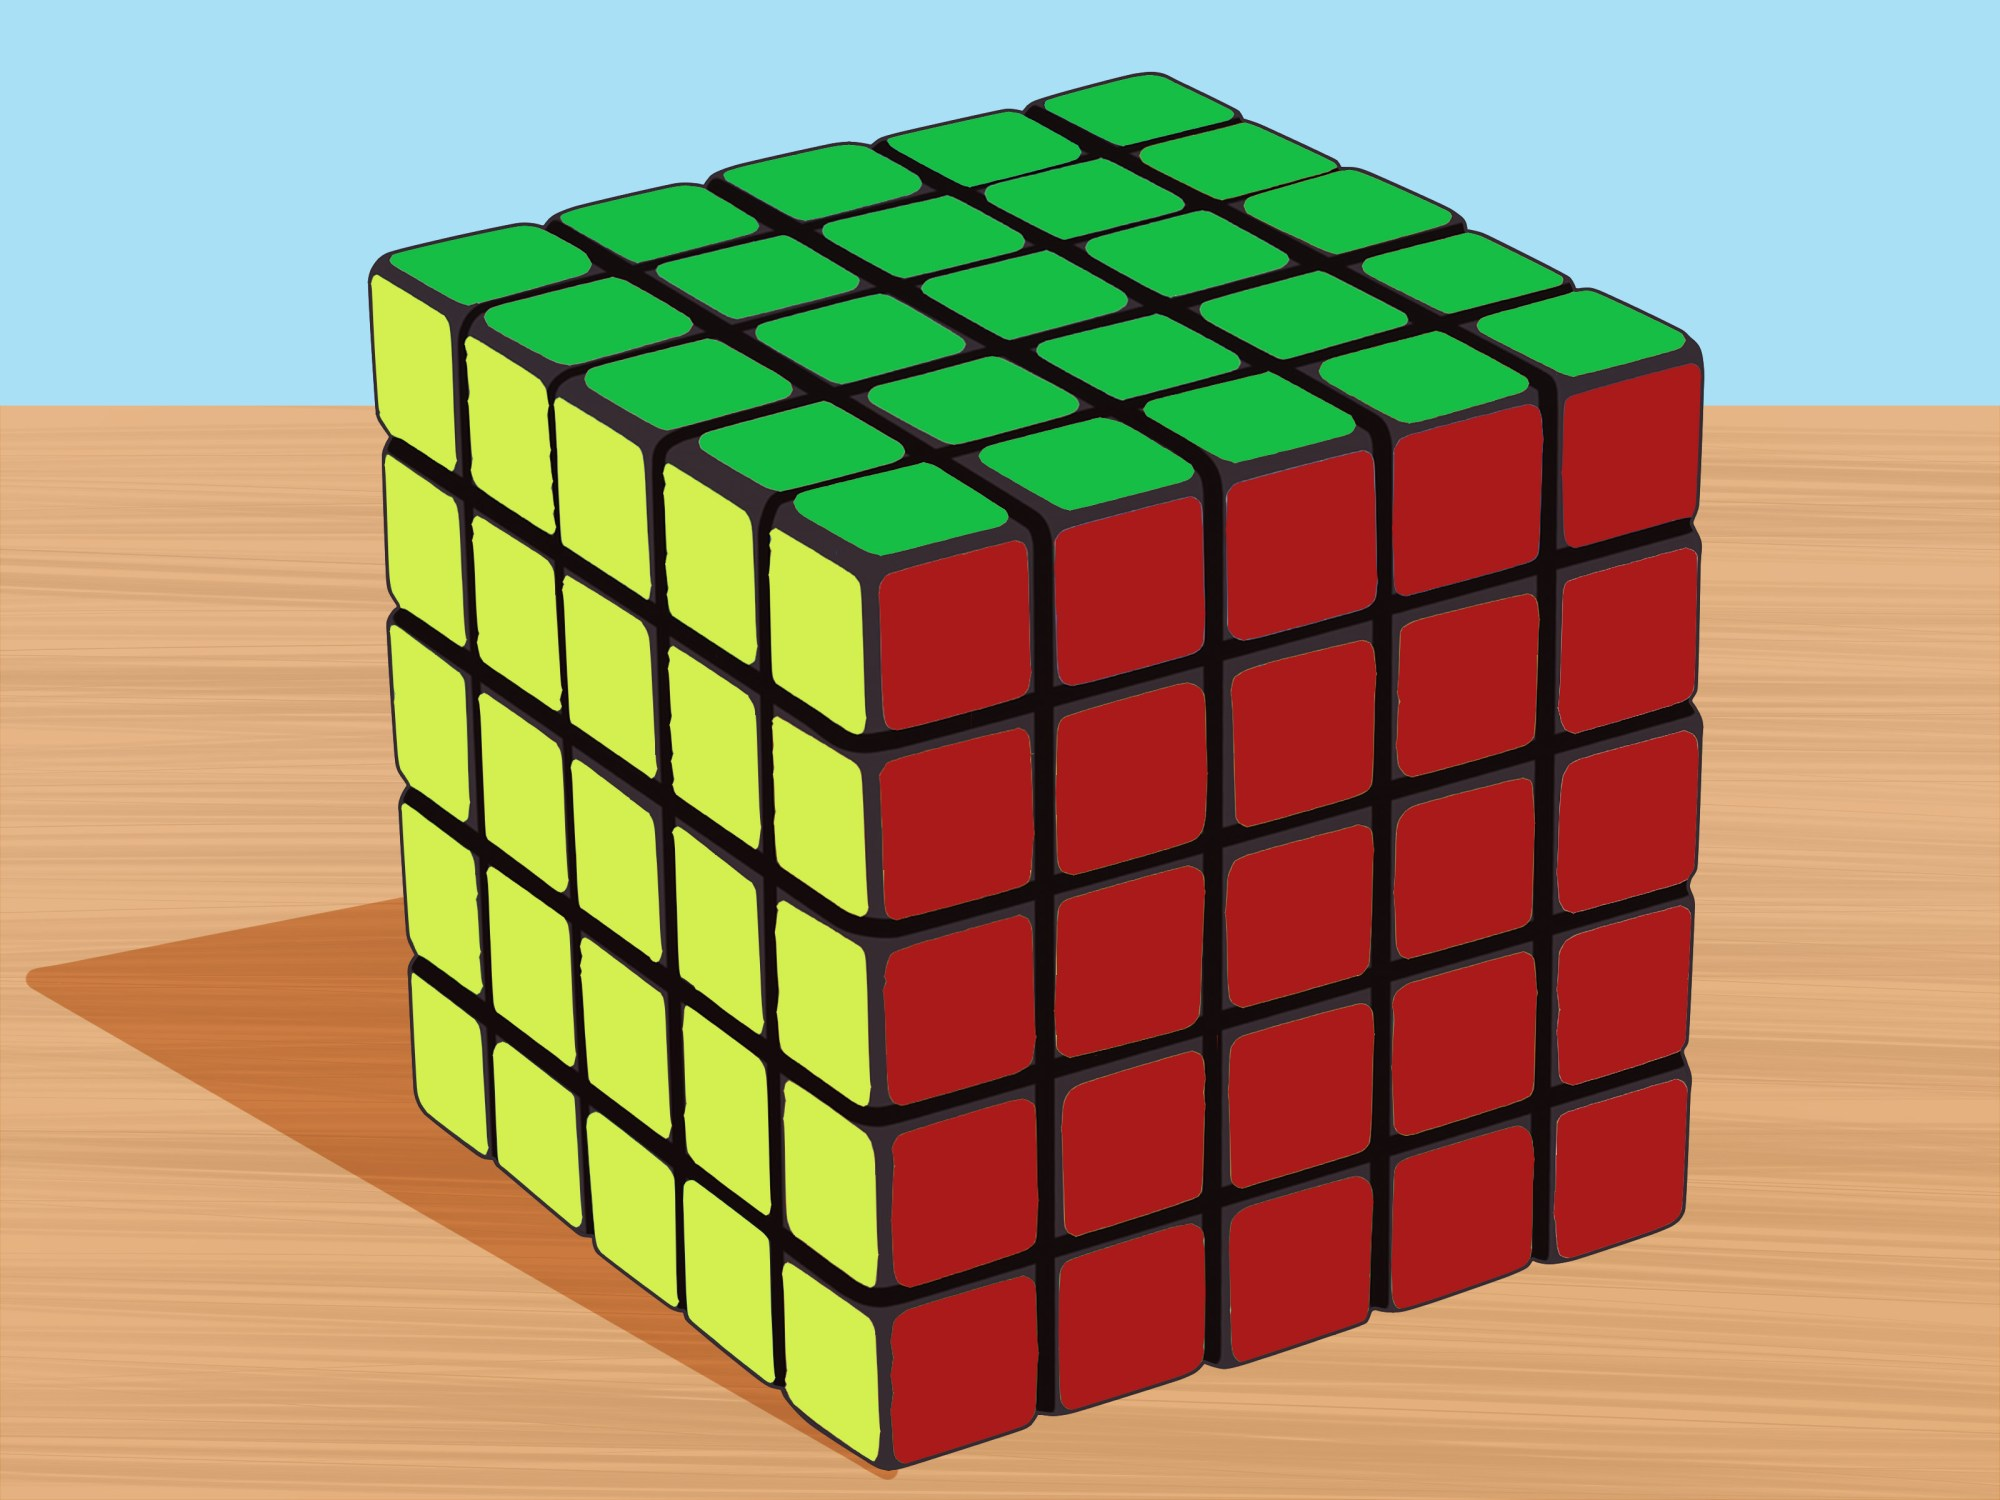 hight resolution of how to solve a 5x5x5 rubik s cube